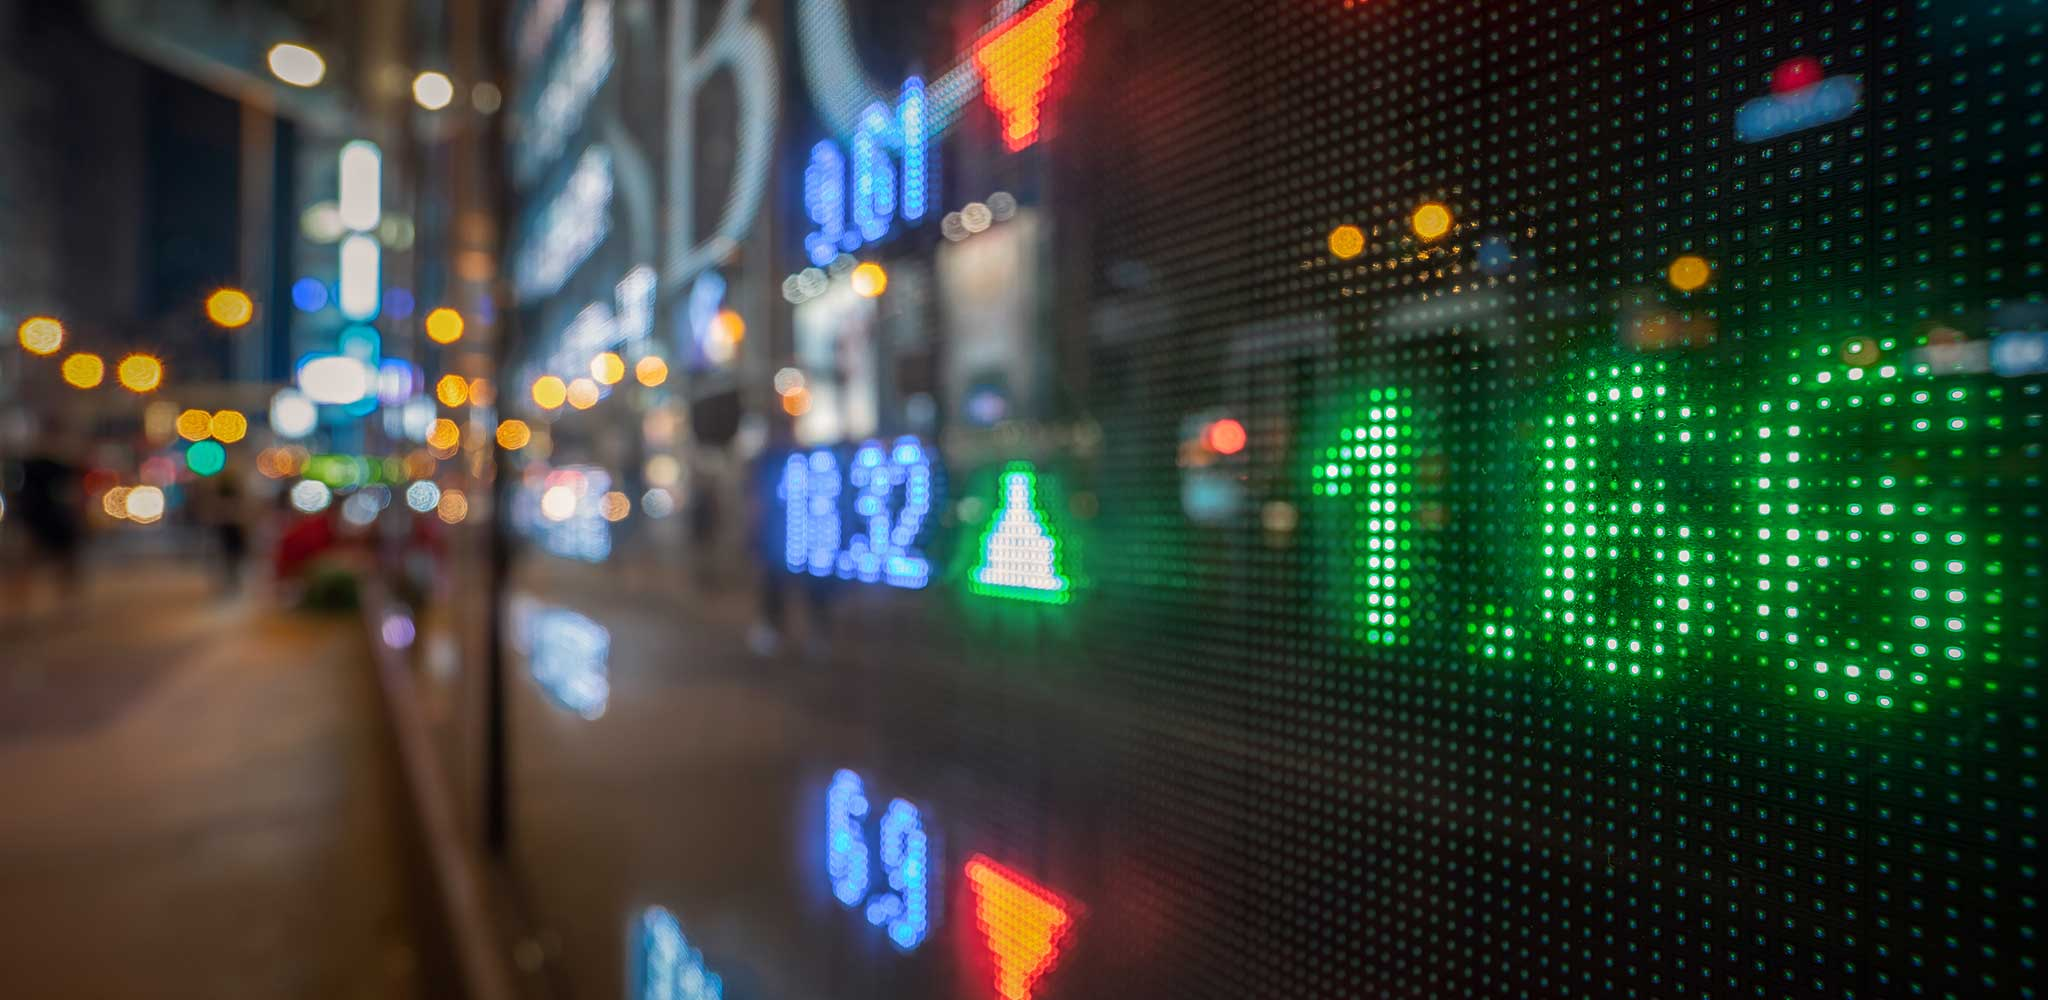 What's Ahead for the Stock Market?